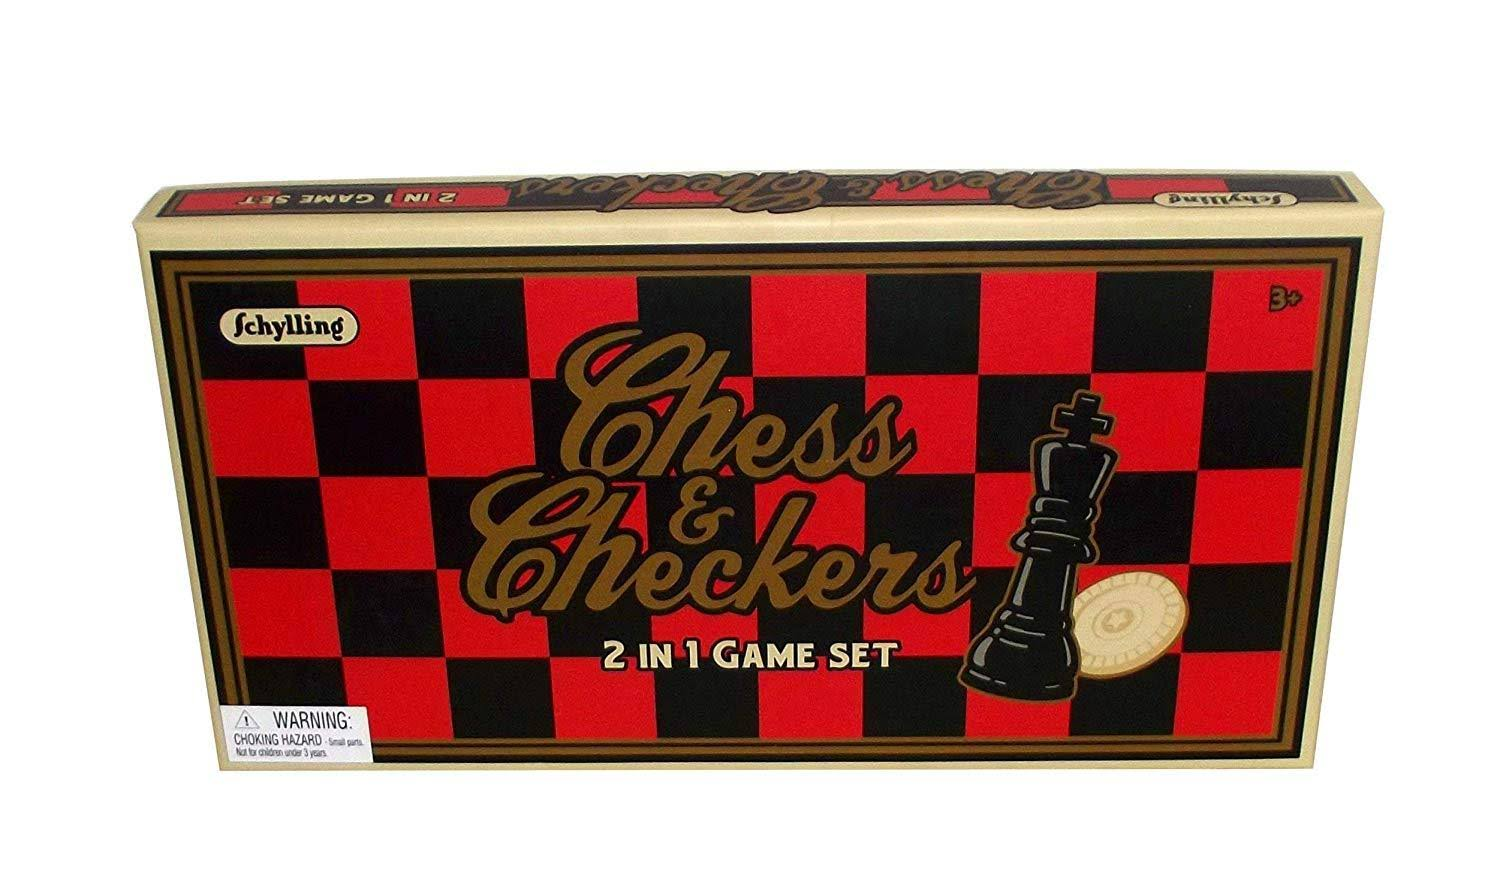 Schylling Chess & Checkers 2 in 1 Game Set